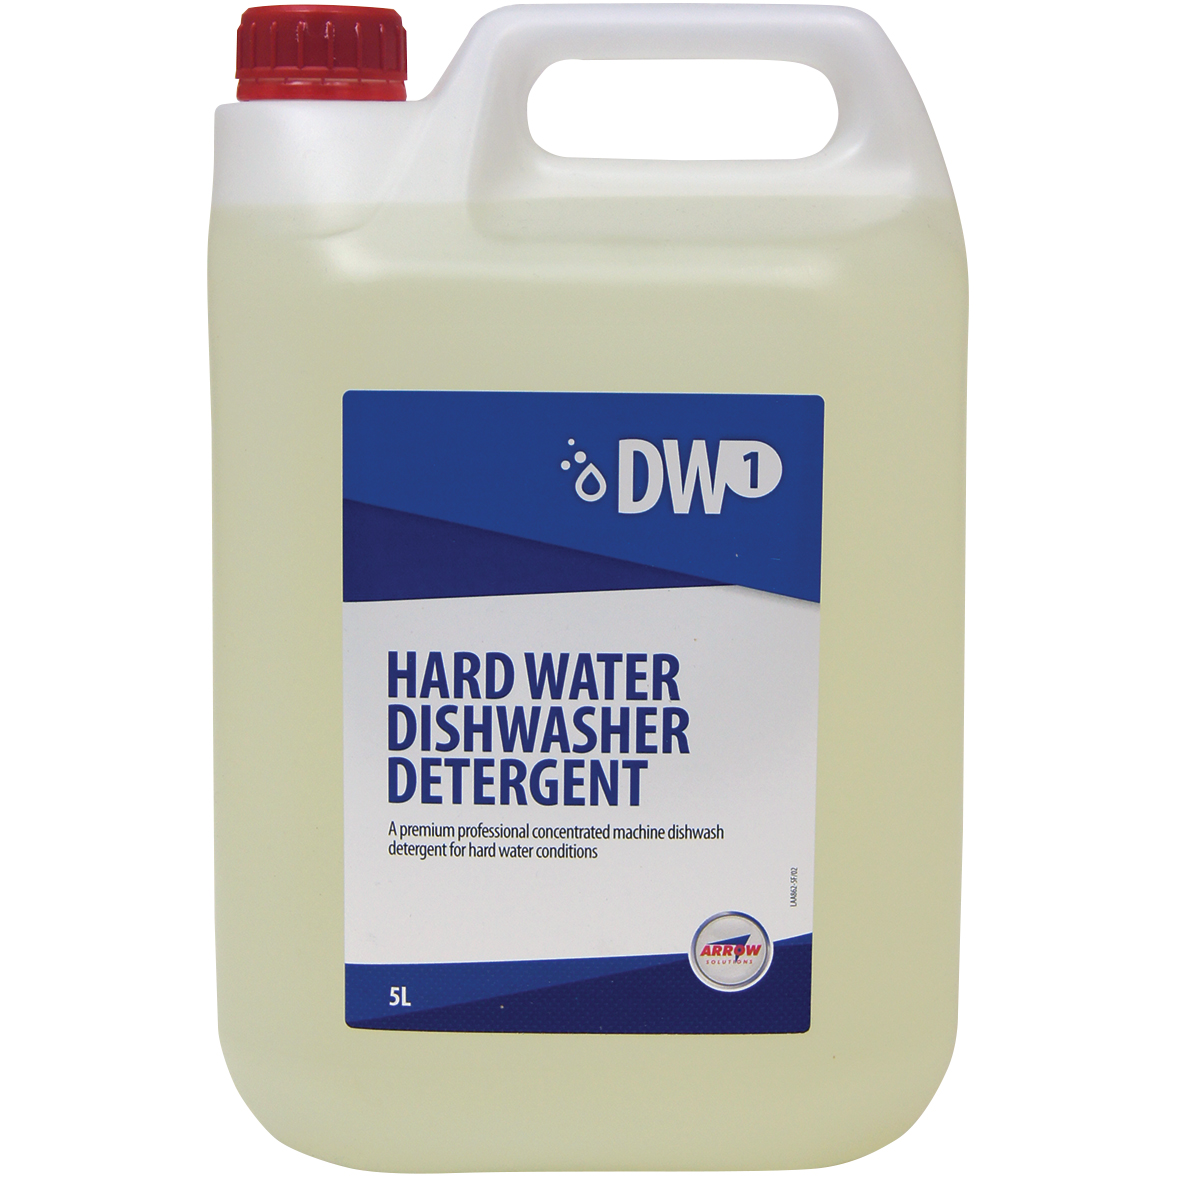 DW1 Hard Water Dishwasher Detergent